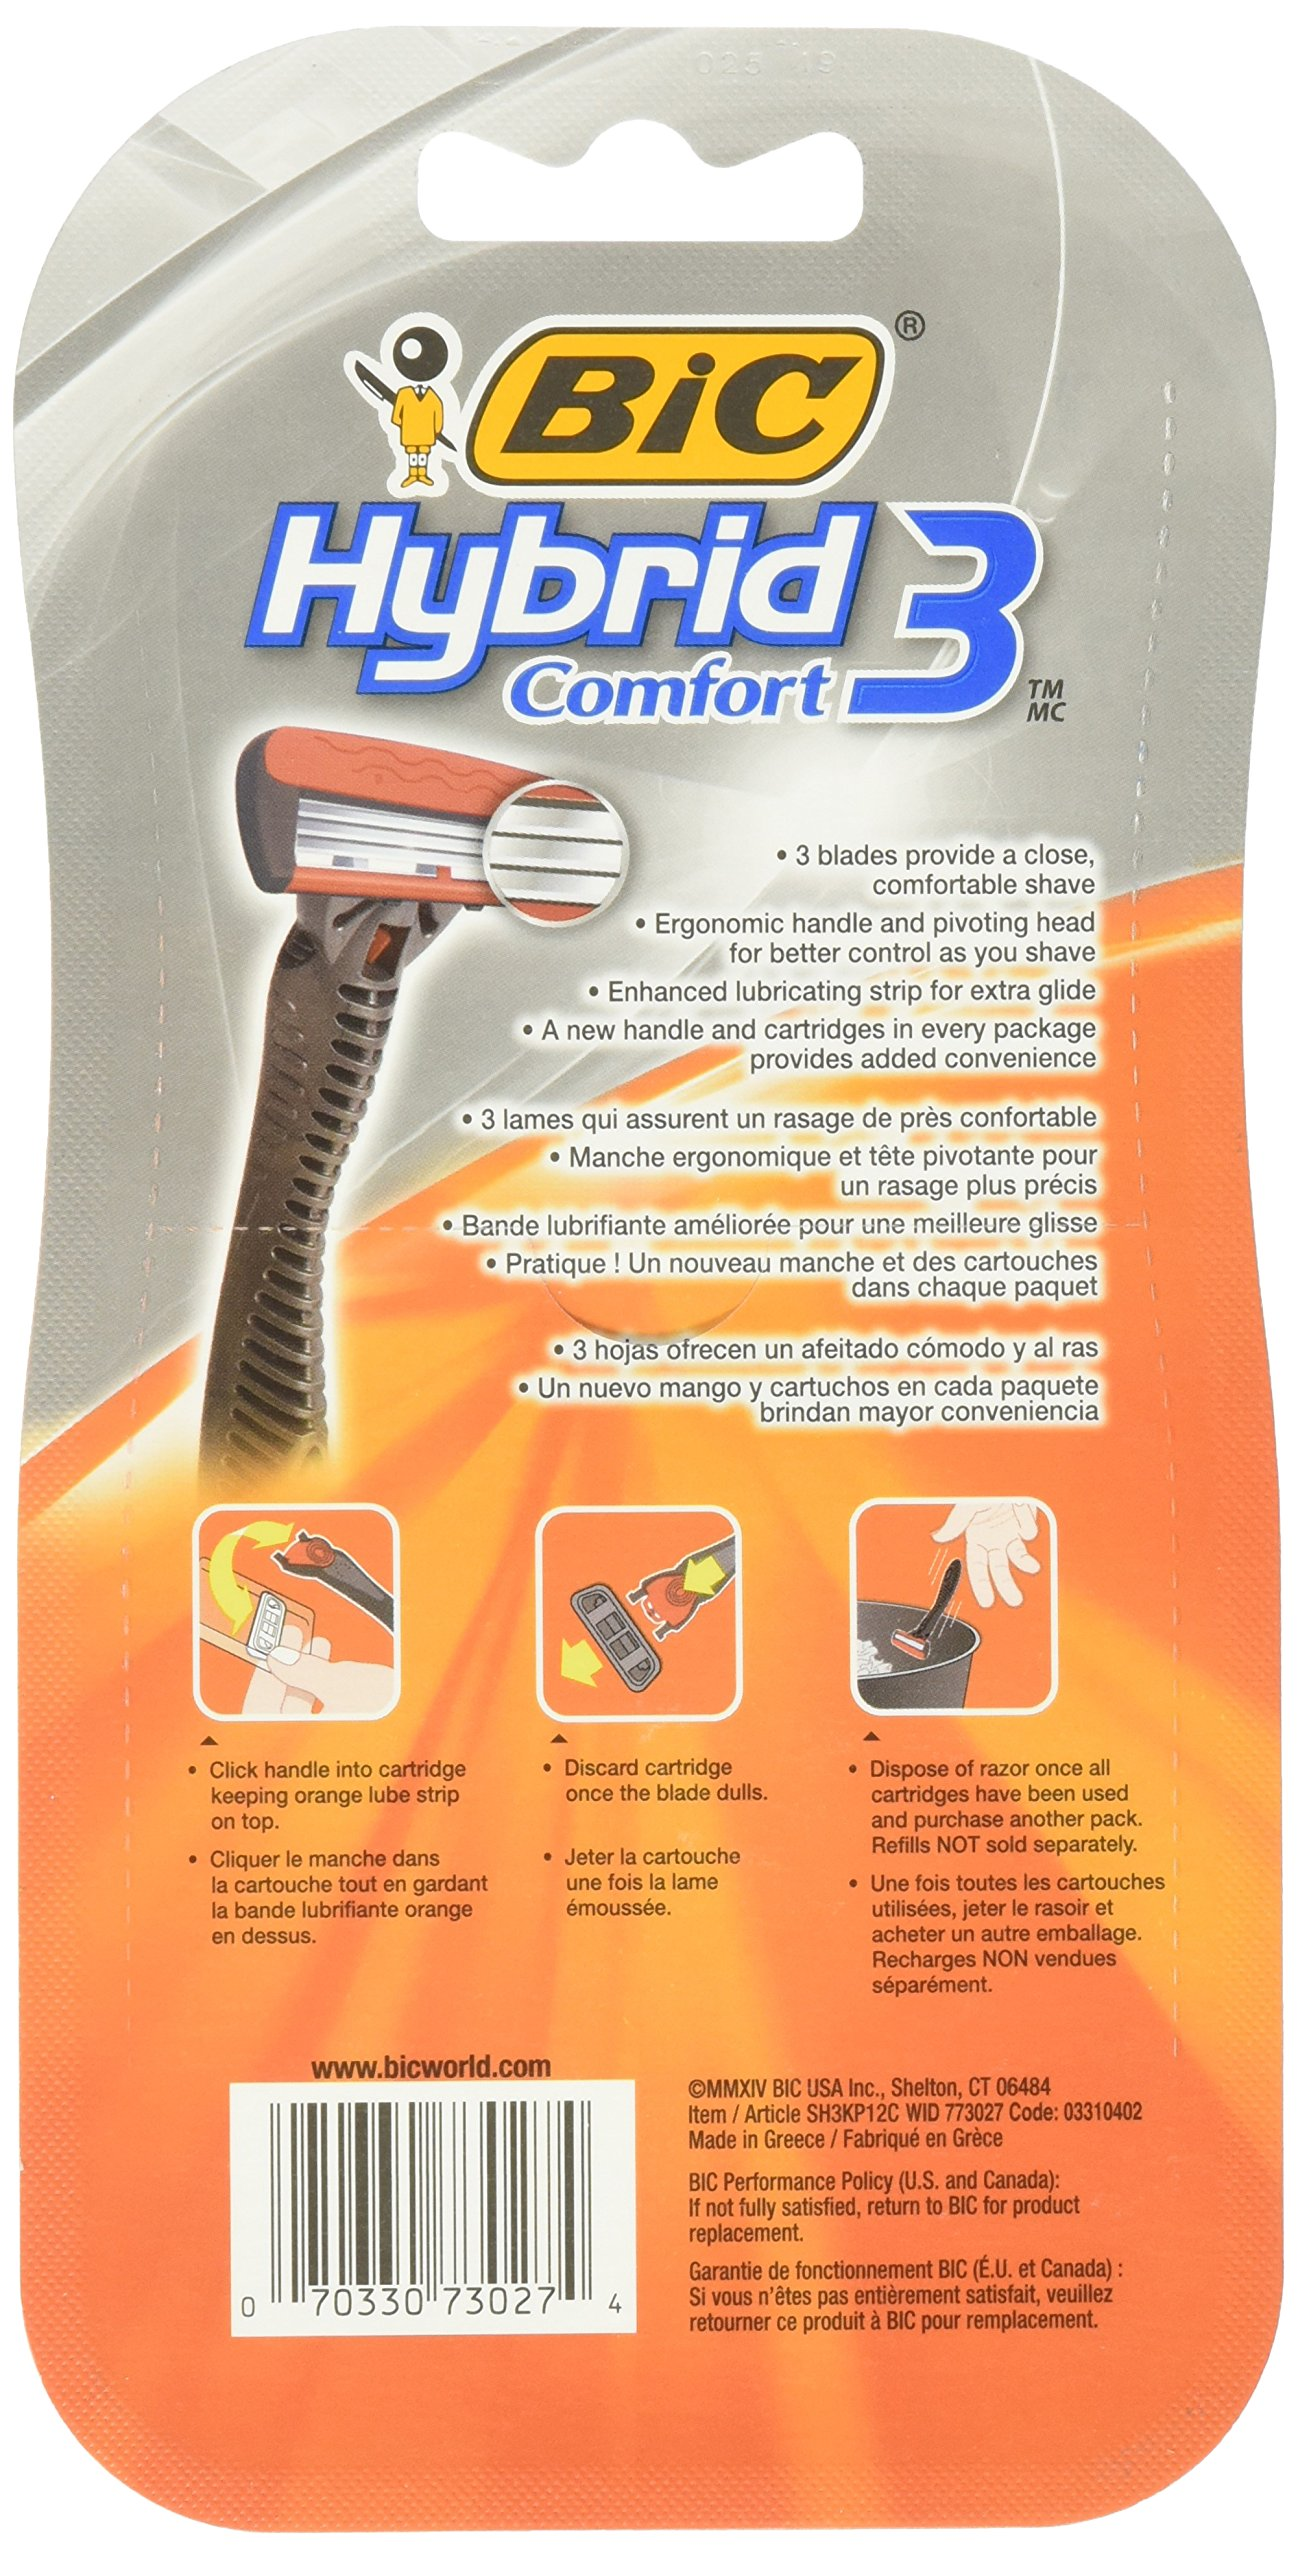 BIC Hybrid 3 Comfort Disposable Razor, Men, 12-Count by BIC (Image #2)